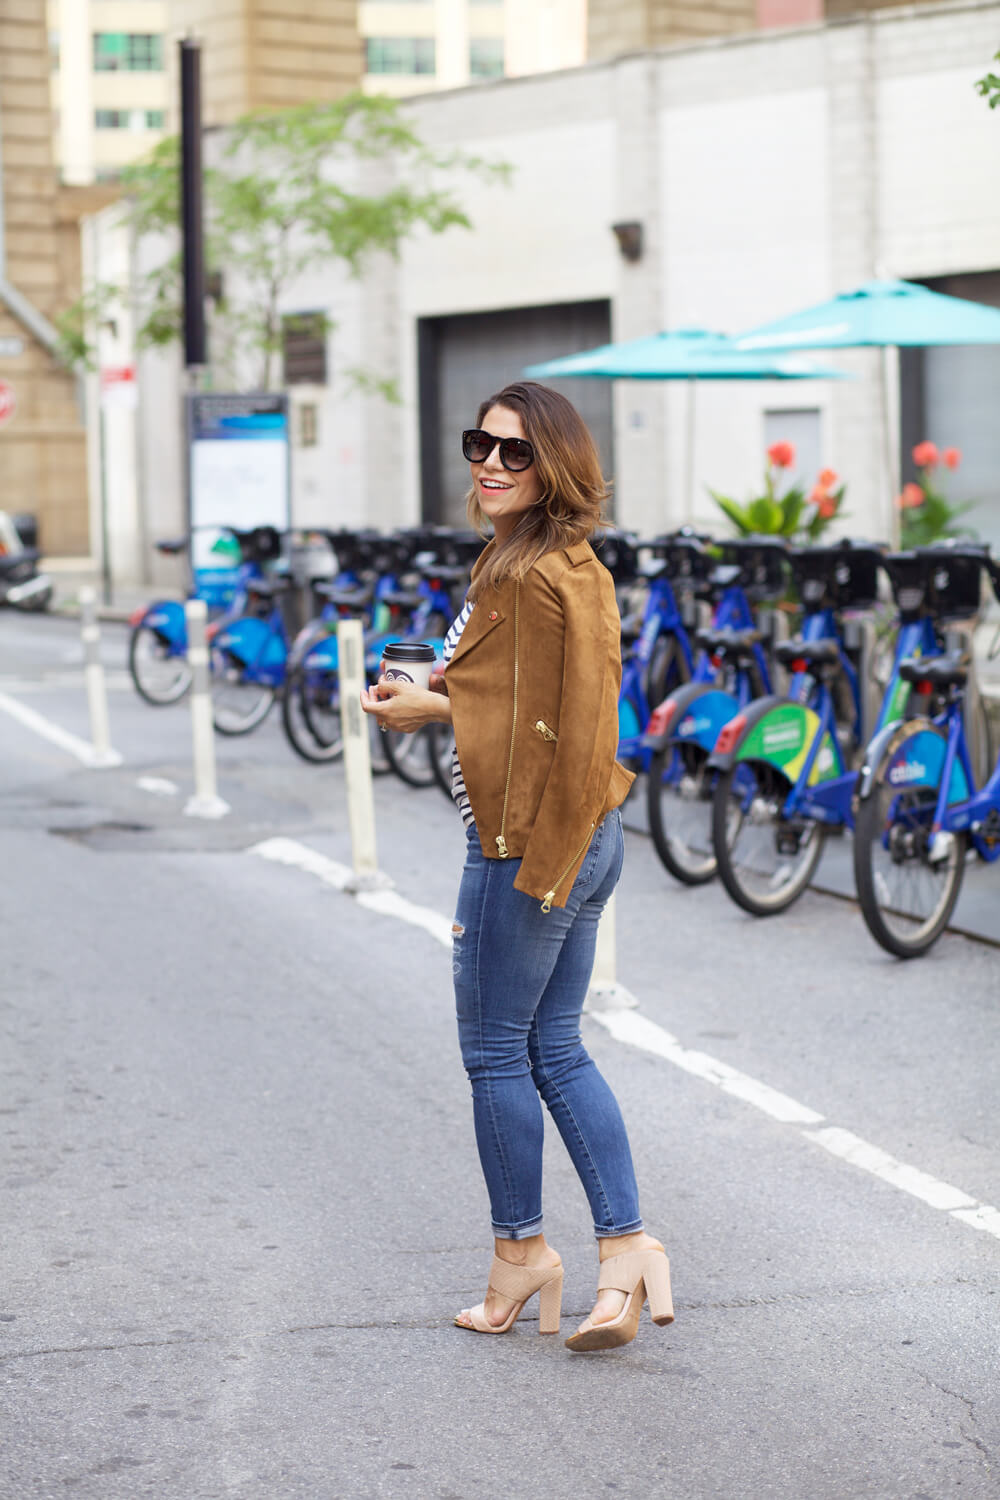 d8b98c9877 hm faux suede jacket fall outfit stripe off shoulder top ag denim fall  outfit ideas corporate